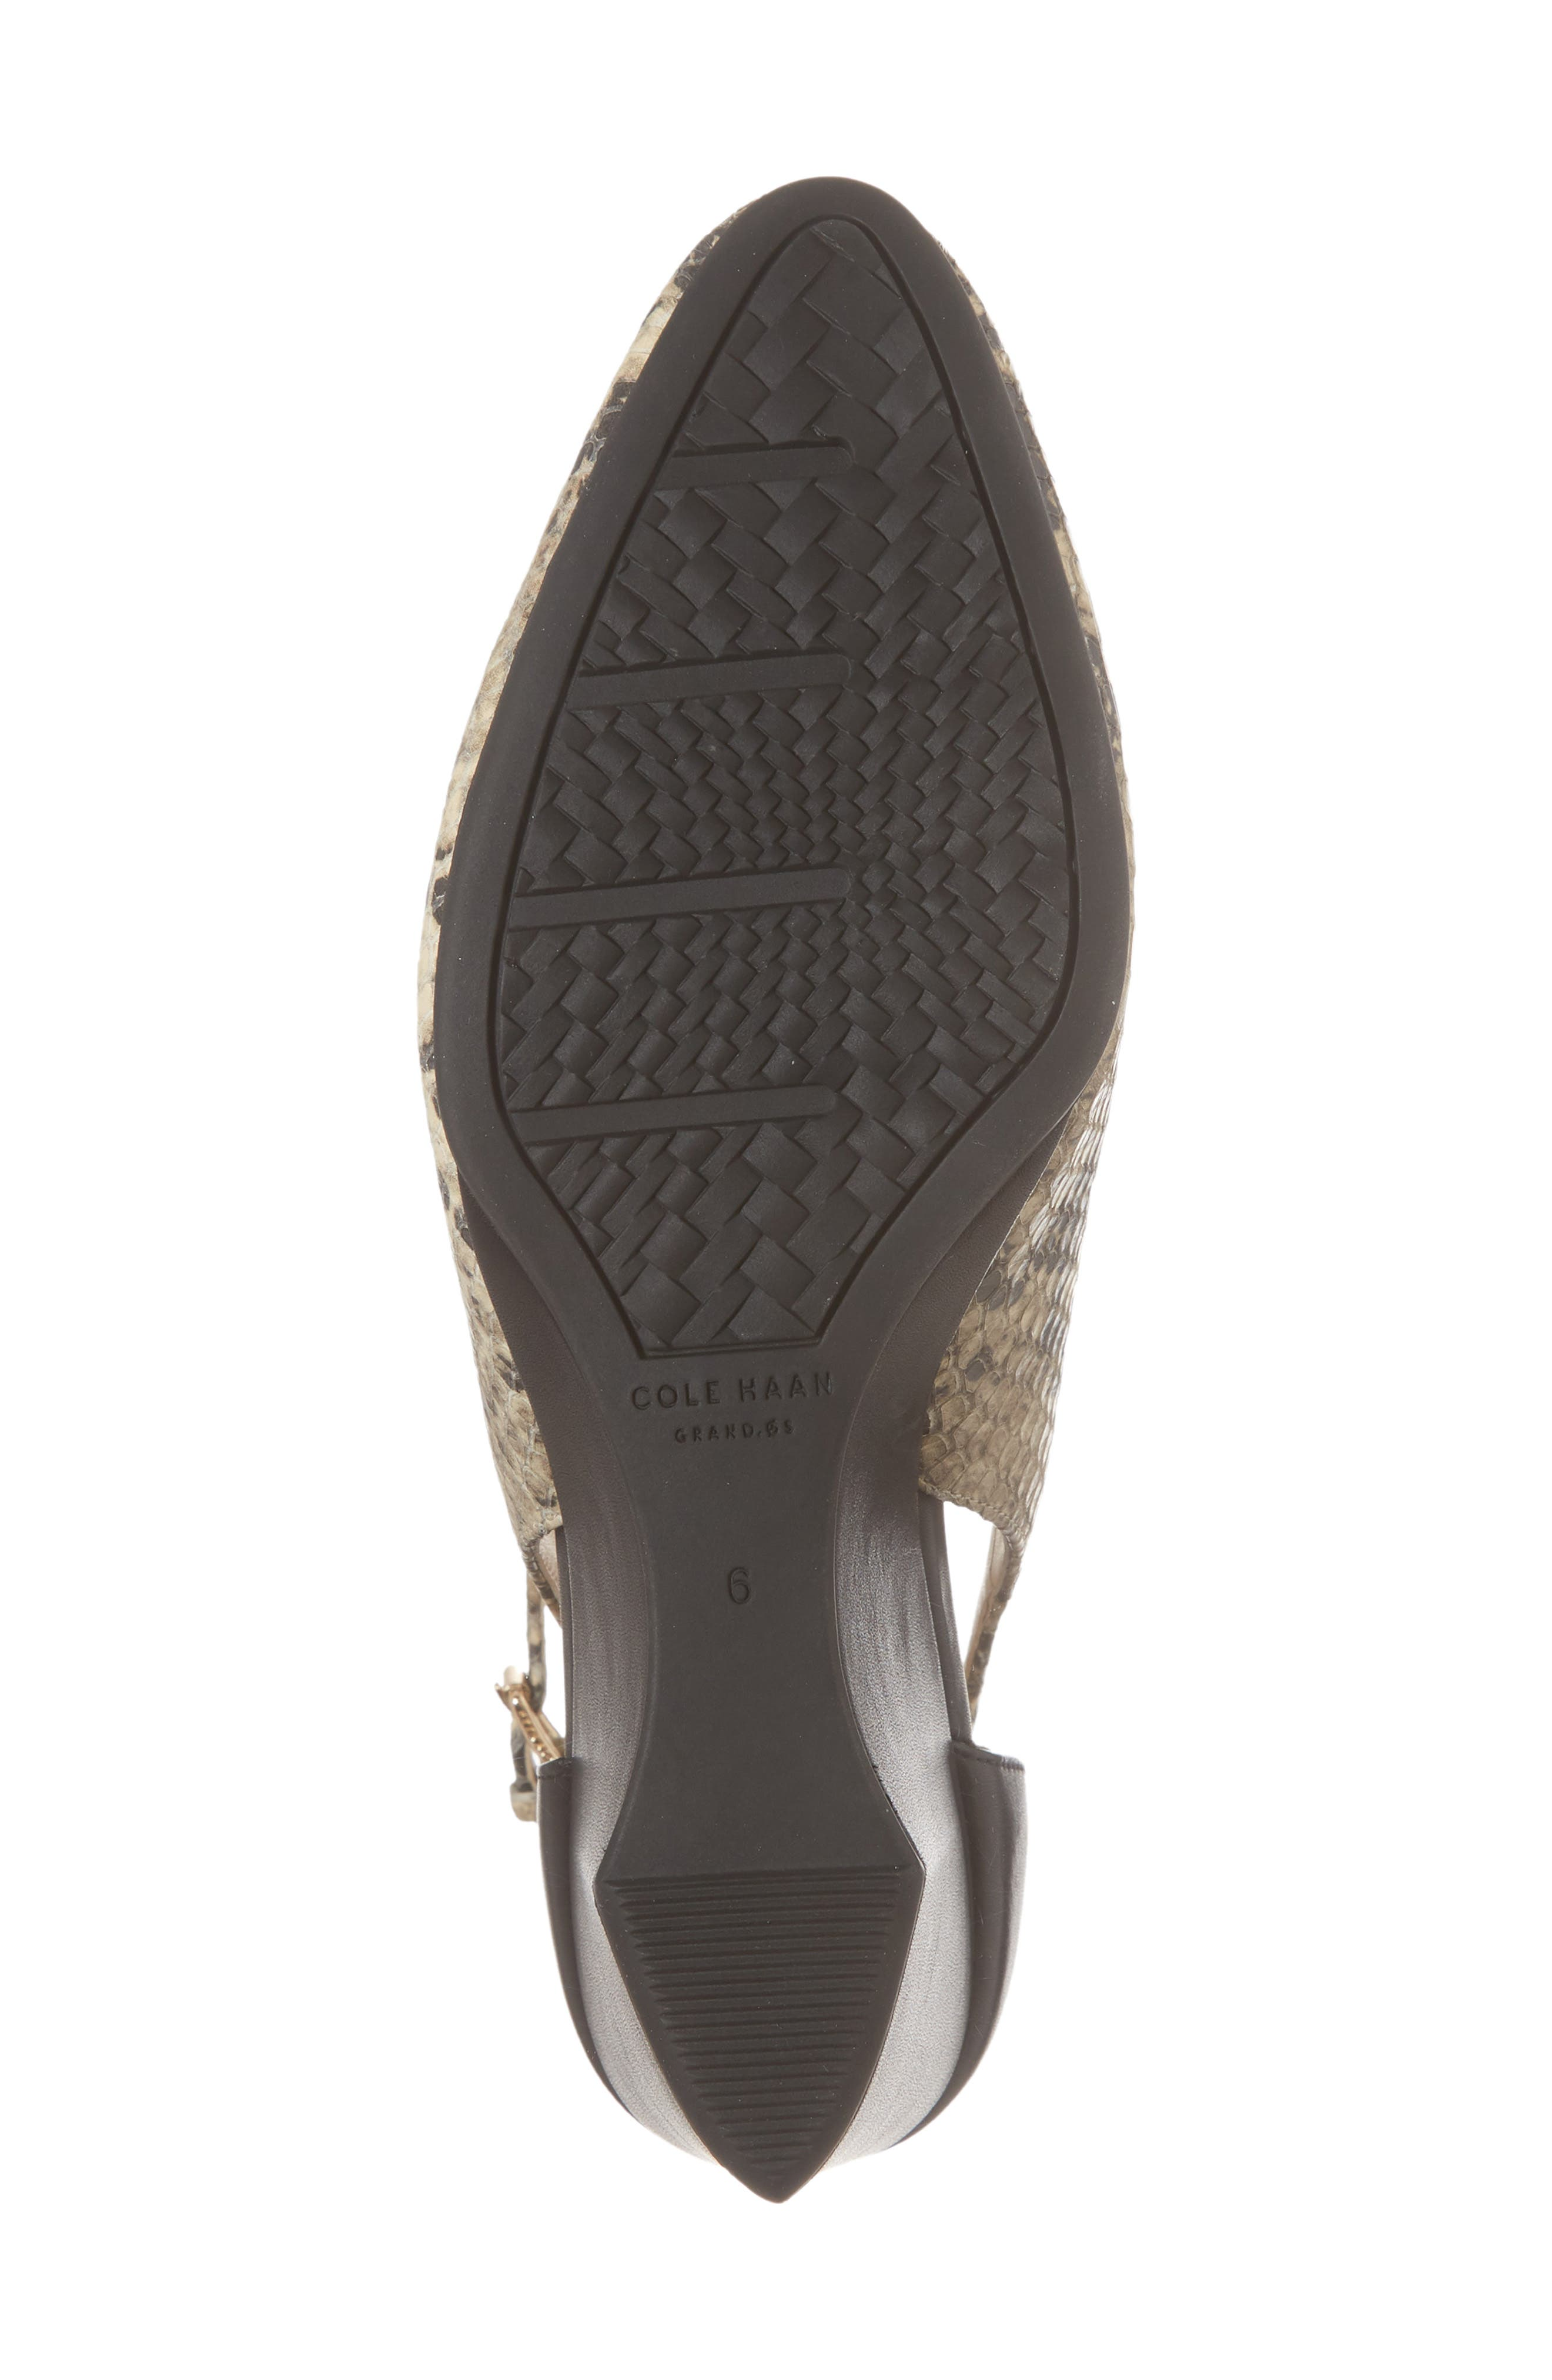 Lacey Cutout Wedge Pump,                             Alternate thumbnail 6, color,                             SNAKE PRINT LEATHER